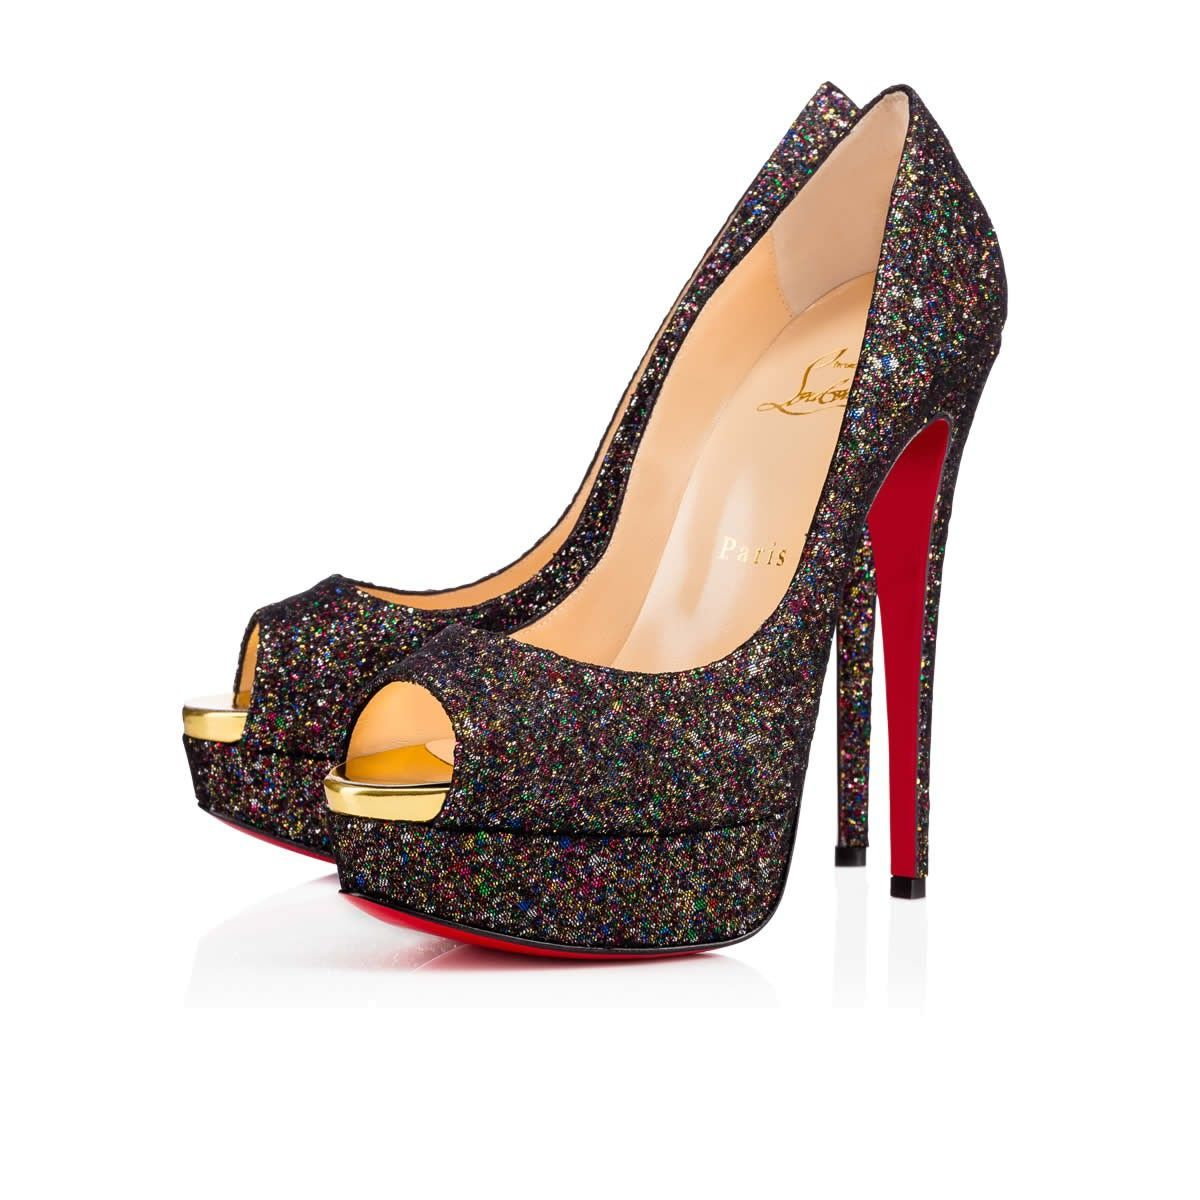 026db879ca CHRISTIAN LOUBOUTIN Lady Peep 150Mm Multicolor Glitter. #christianlouboutin  #shoes #